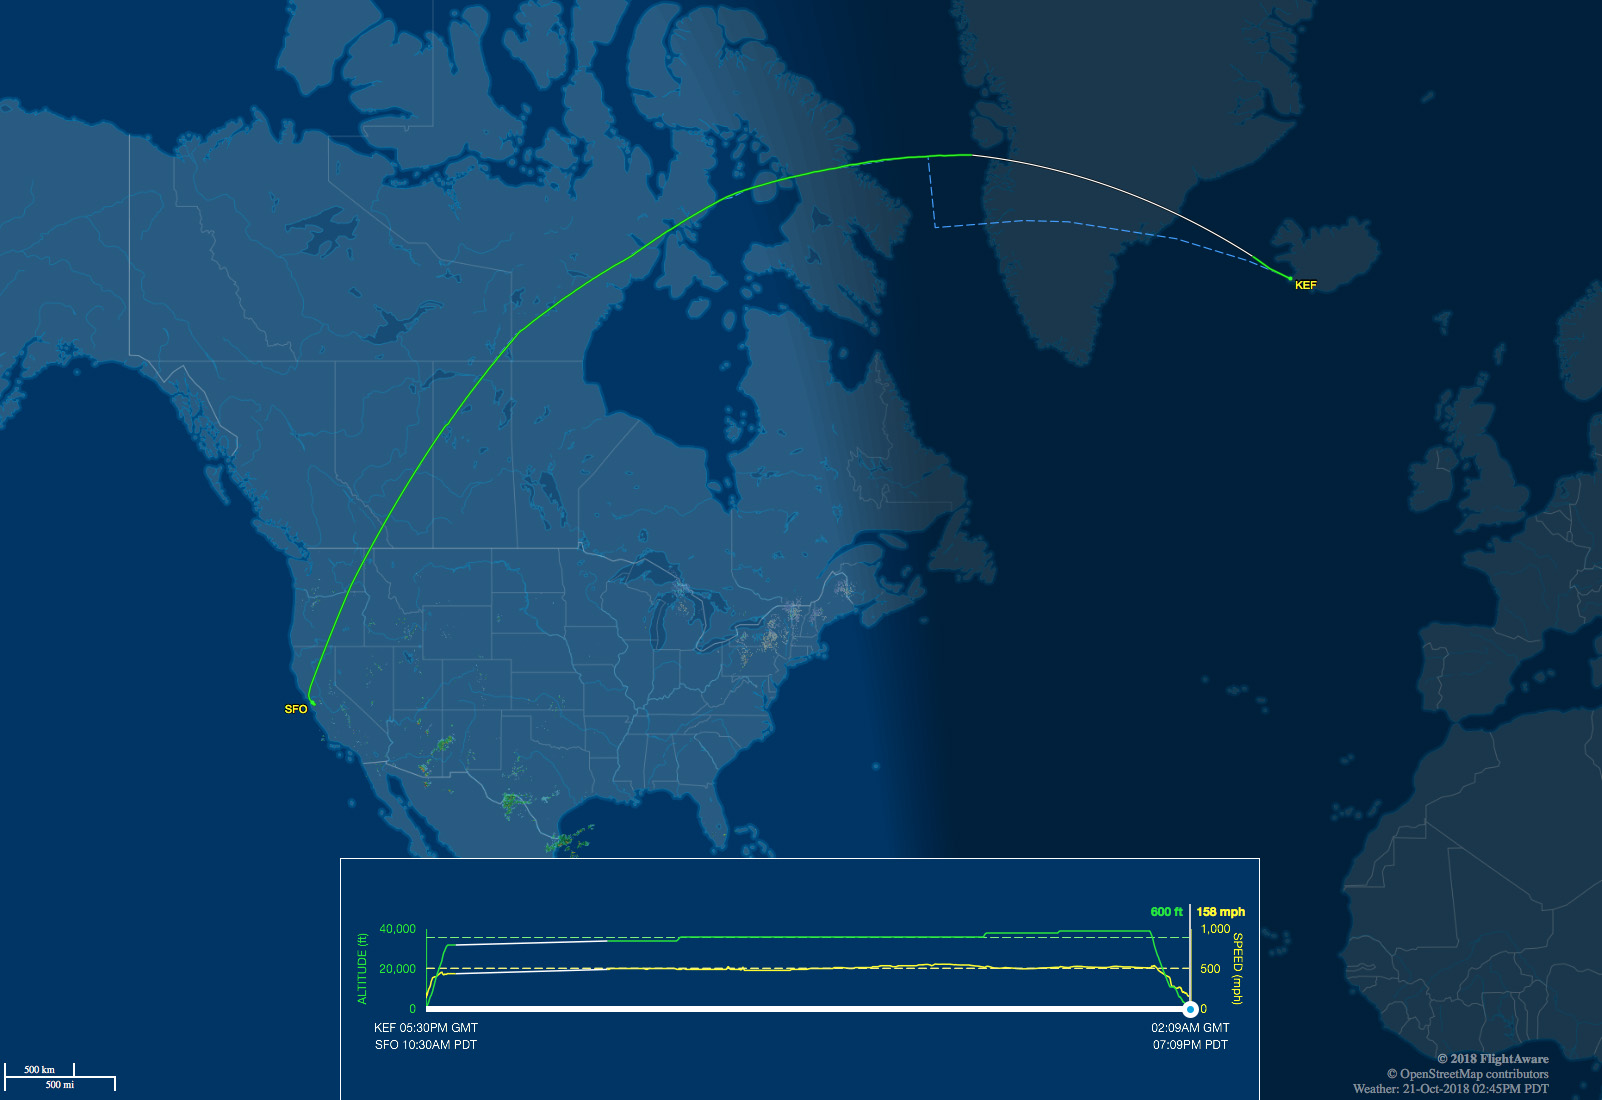 KEF-SFO route map